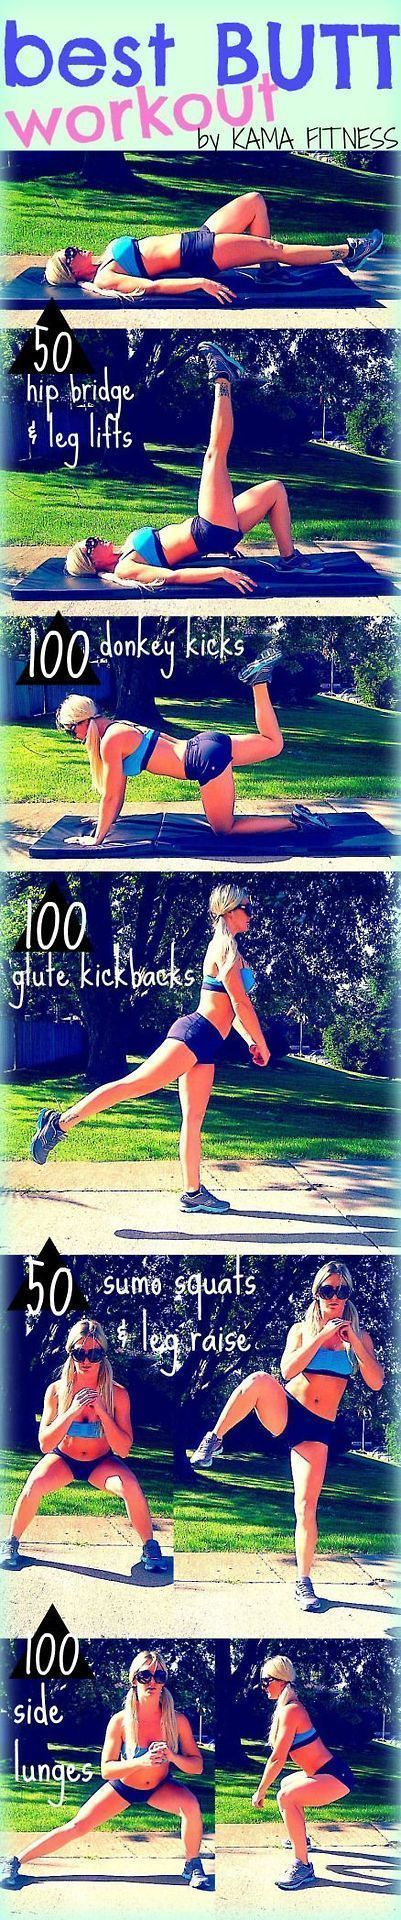 Body weight resistance workout for the booty that requires no equipment? I'm a fan! Looks like a great one!